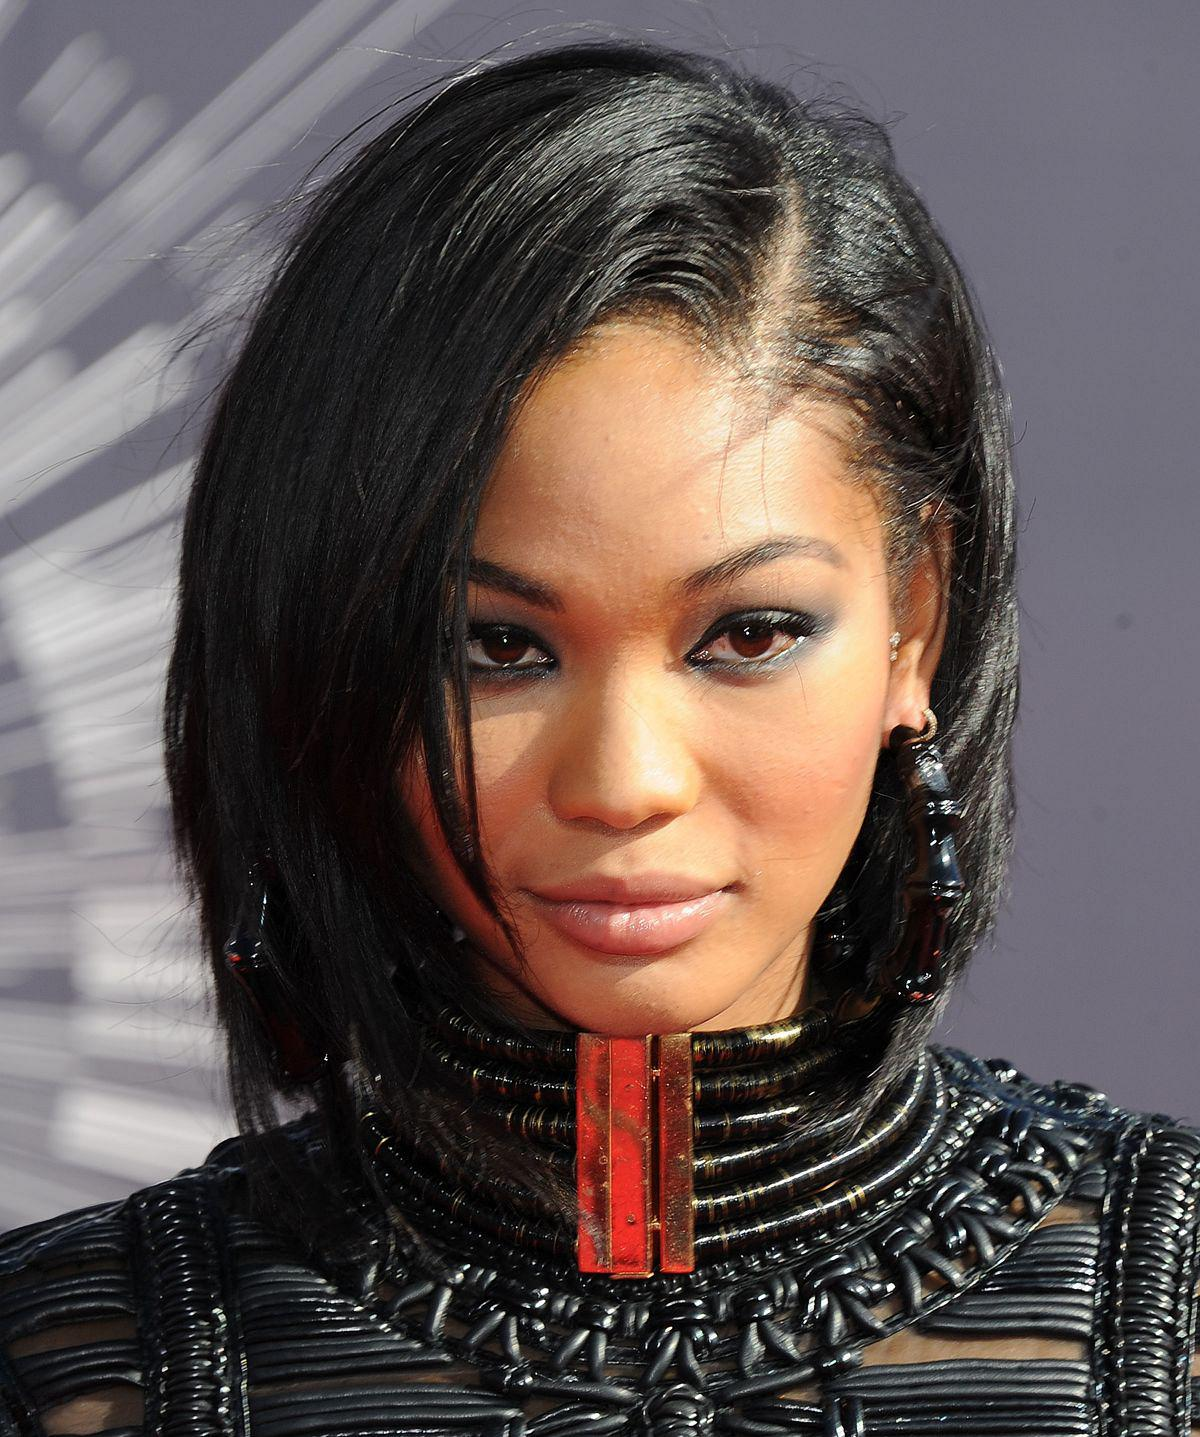 chanel-iman-at-2014-mtv-video-music-awards_7